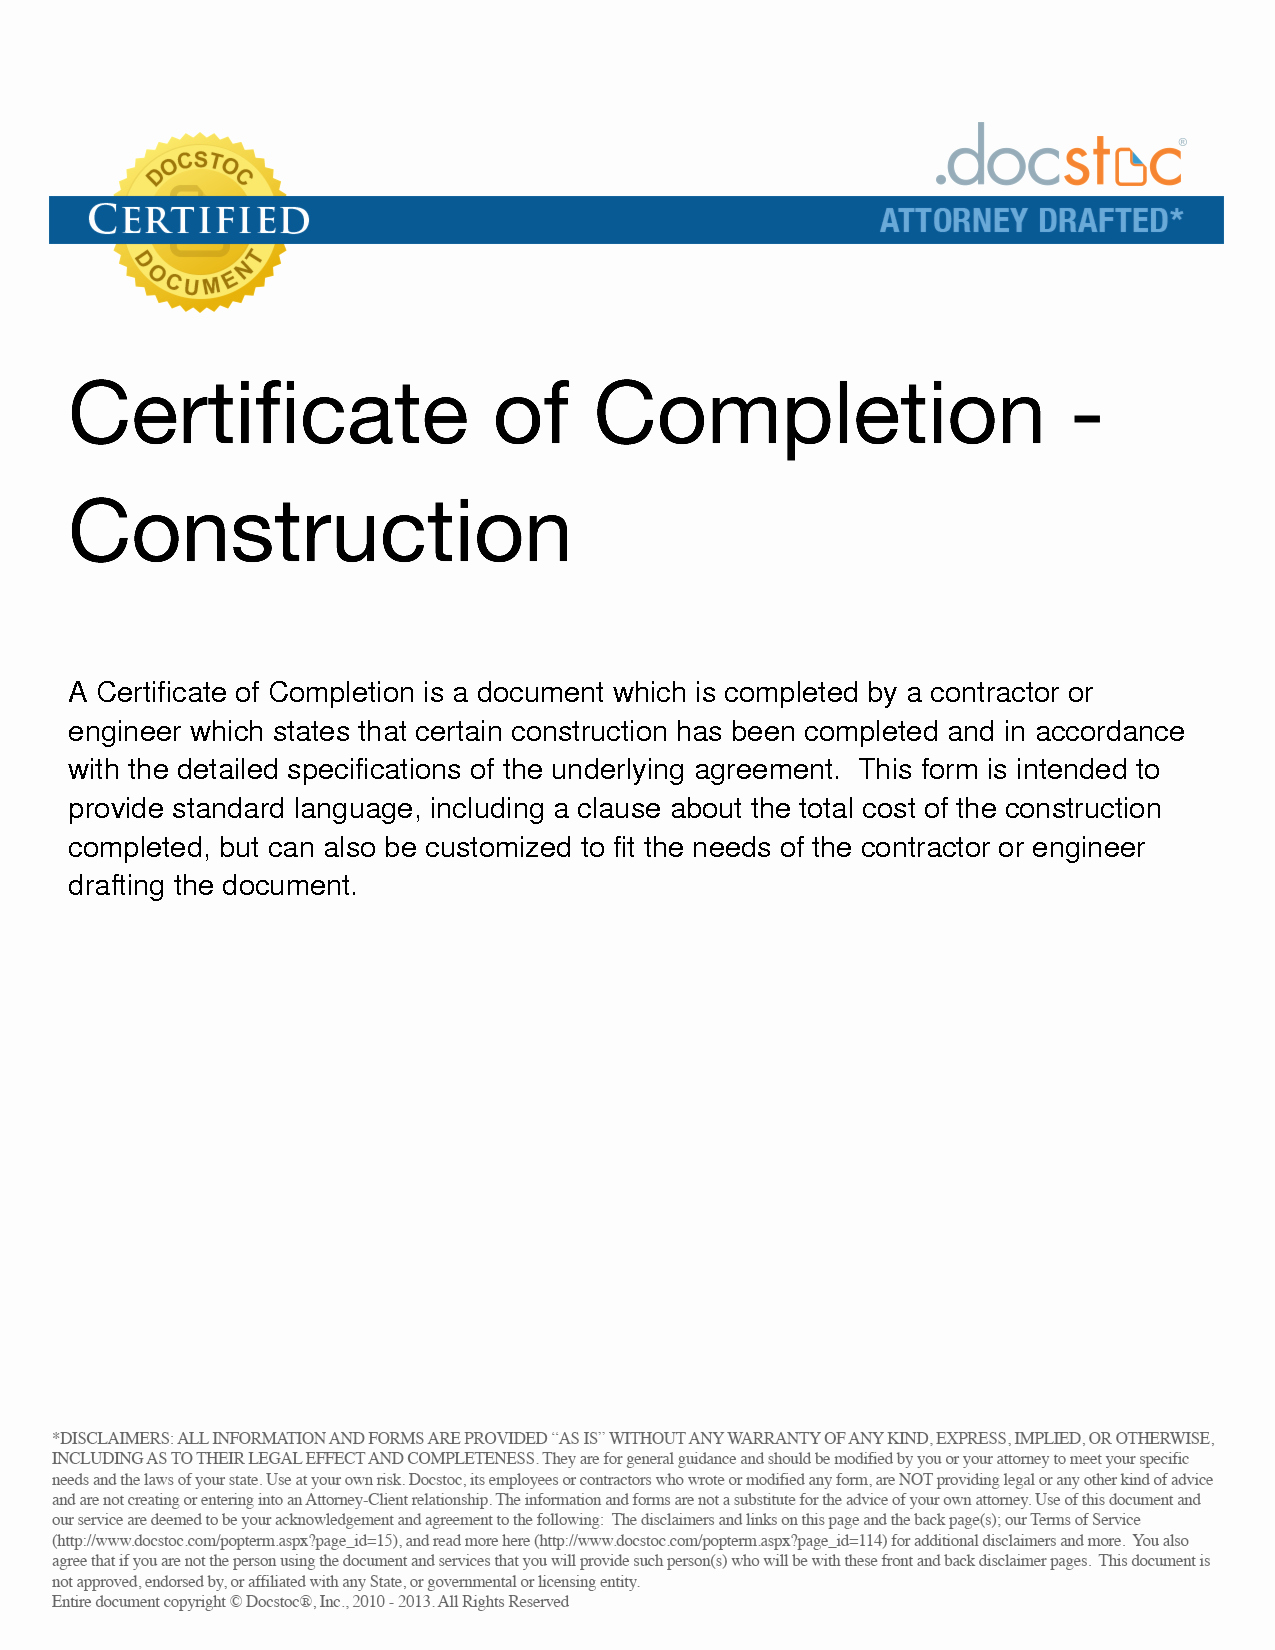 Construction Certificate Of Completion Template Beautiful Work Pletion Muzssp X Fc2